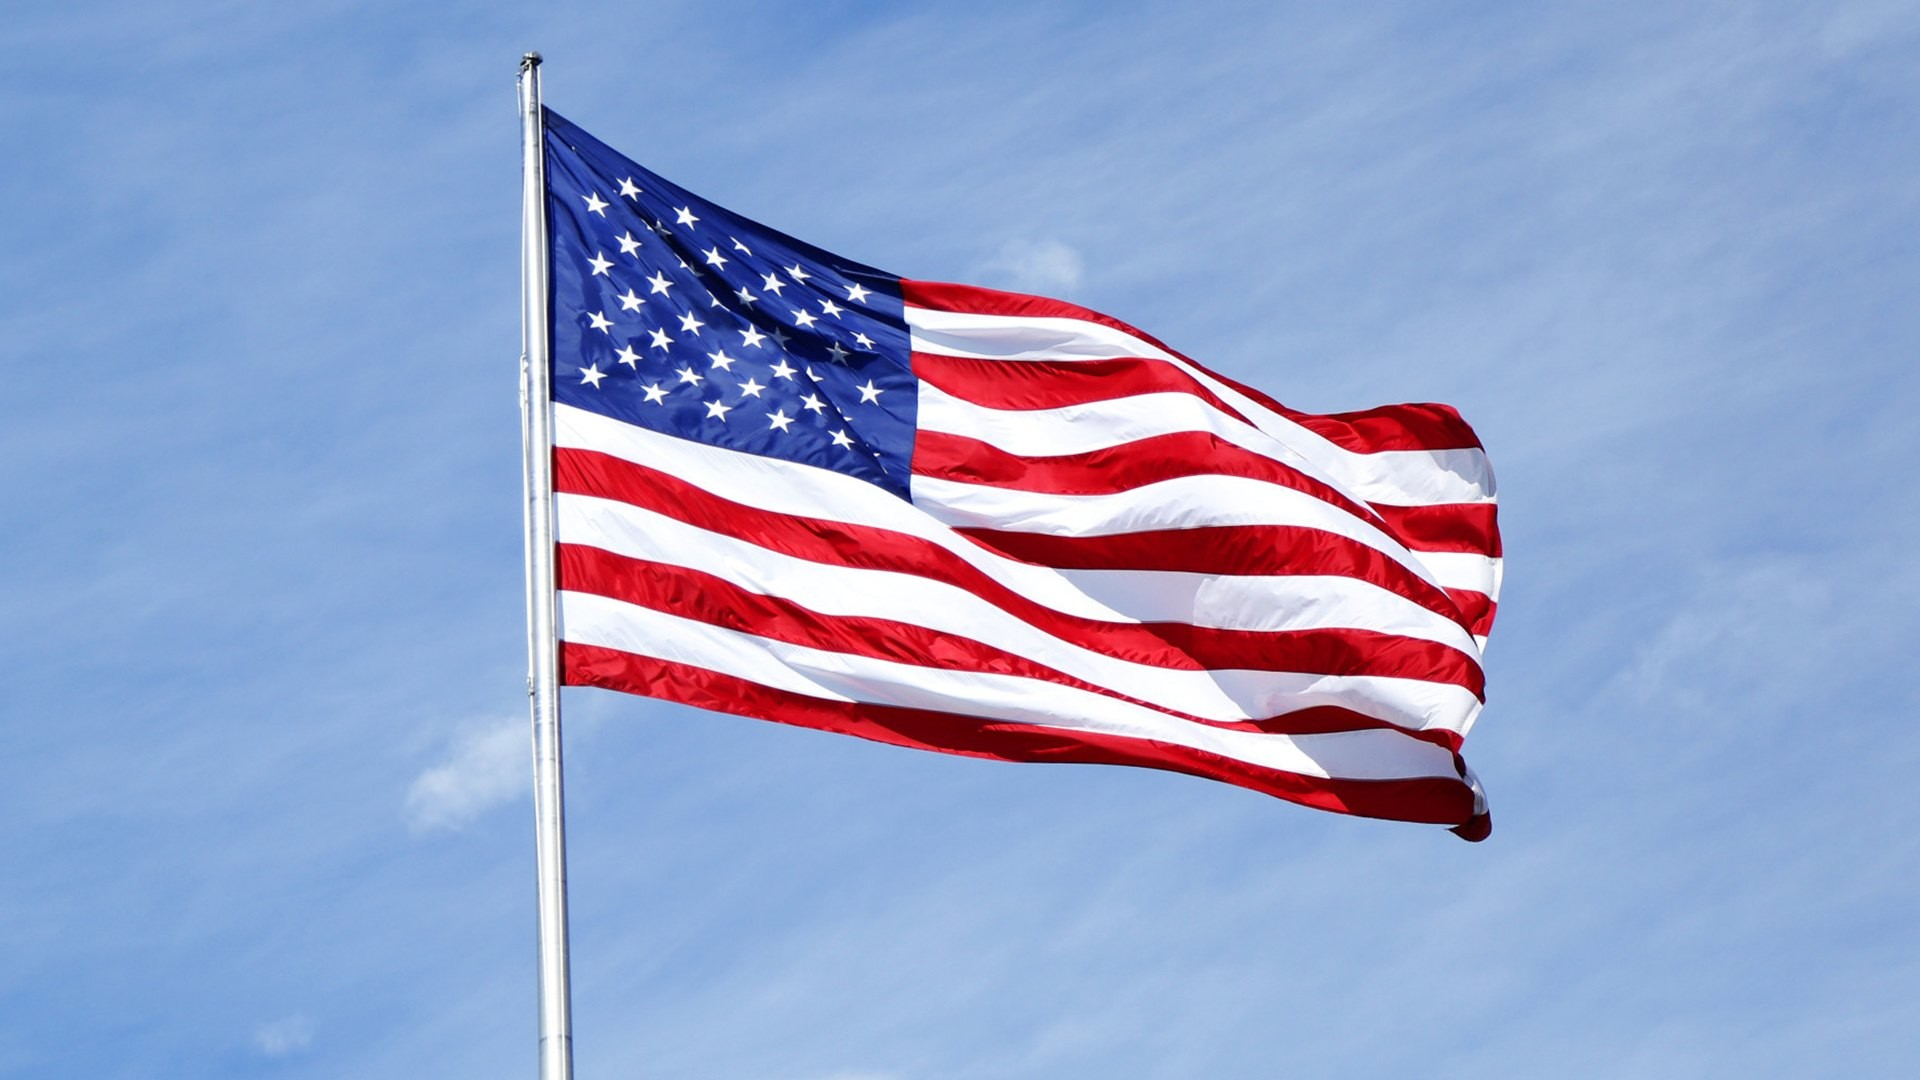 Res: 1920x1080, flag wallpaper free Flag Of USA Pics & Wallpapers 2017 Car Wallpapers